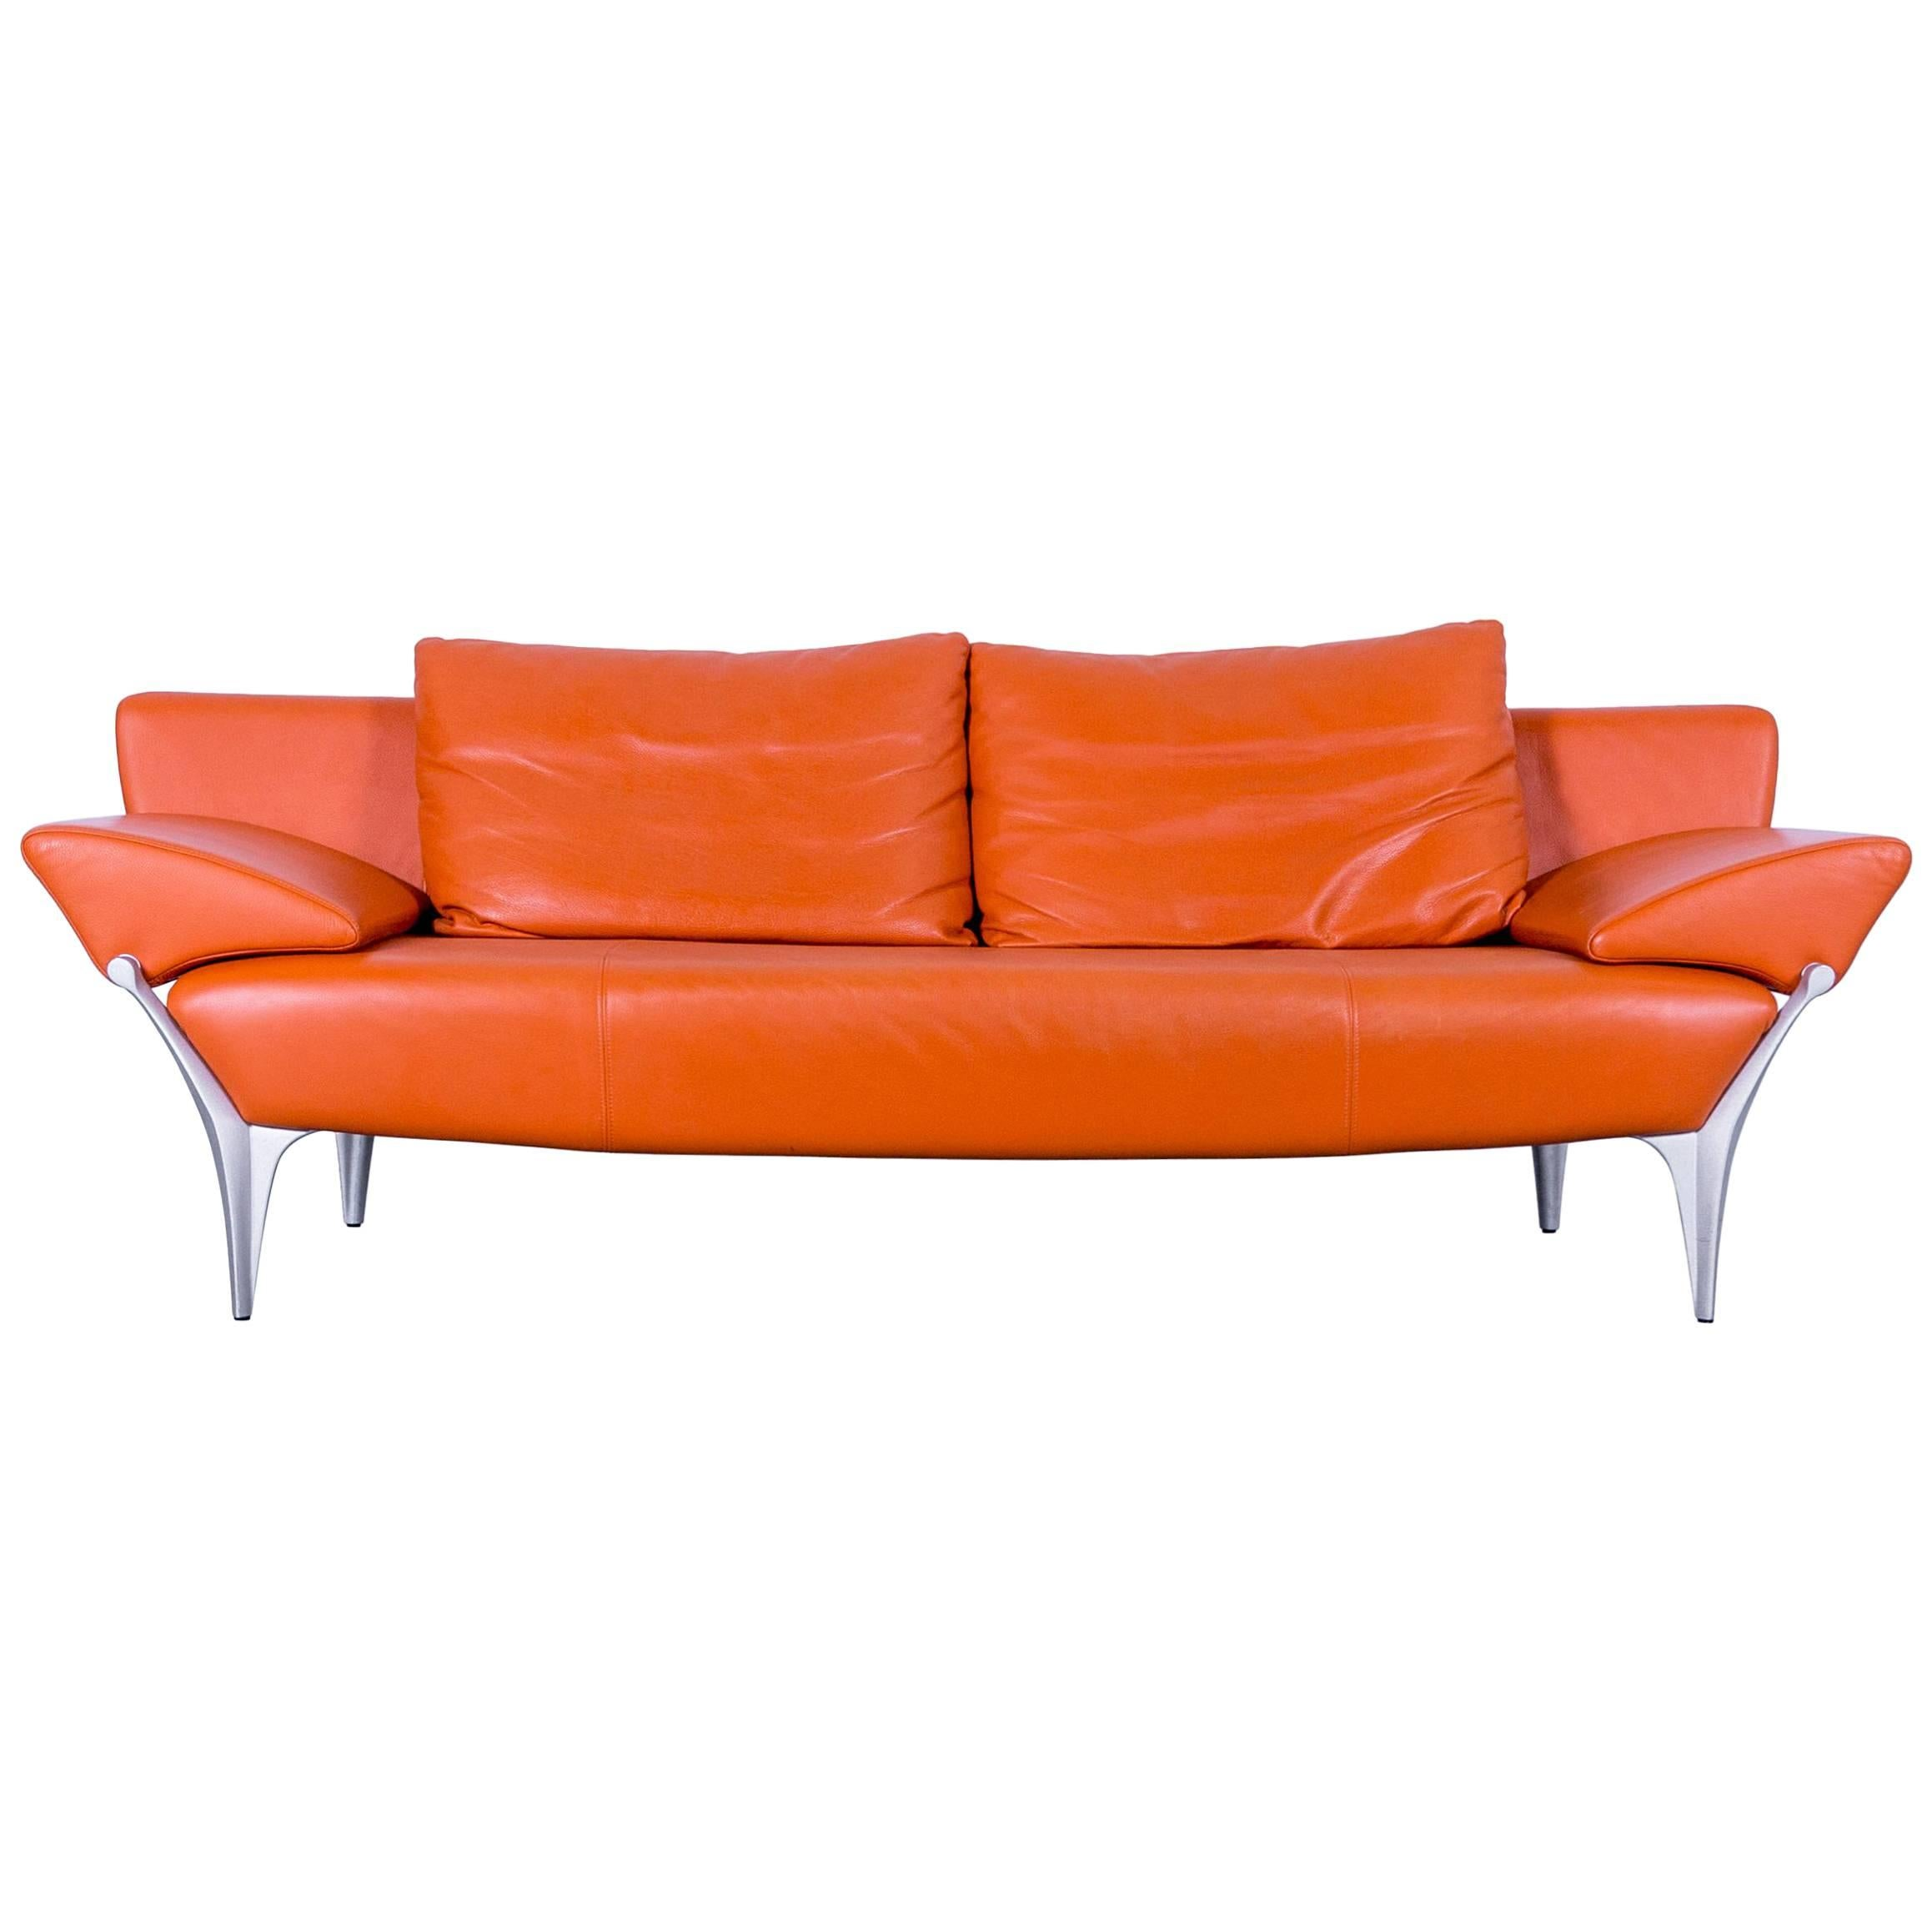 Rolf Benz Sofa 345 Benz Couch Simple Designer Couch Couchtische Rolf Benz Sofas Cape